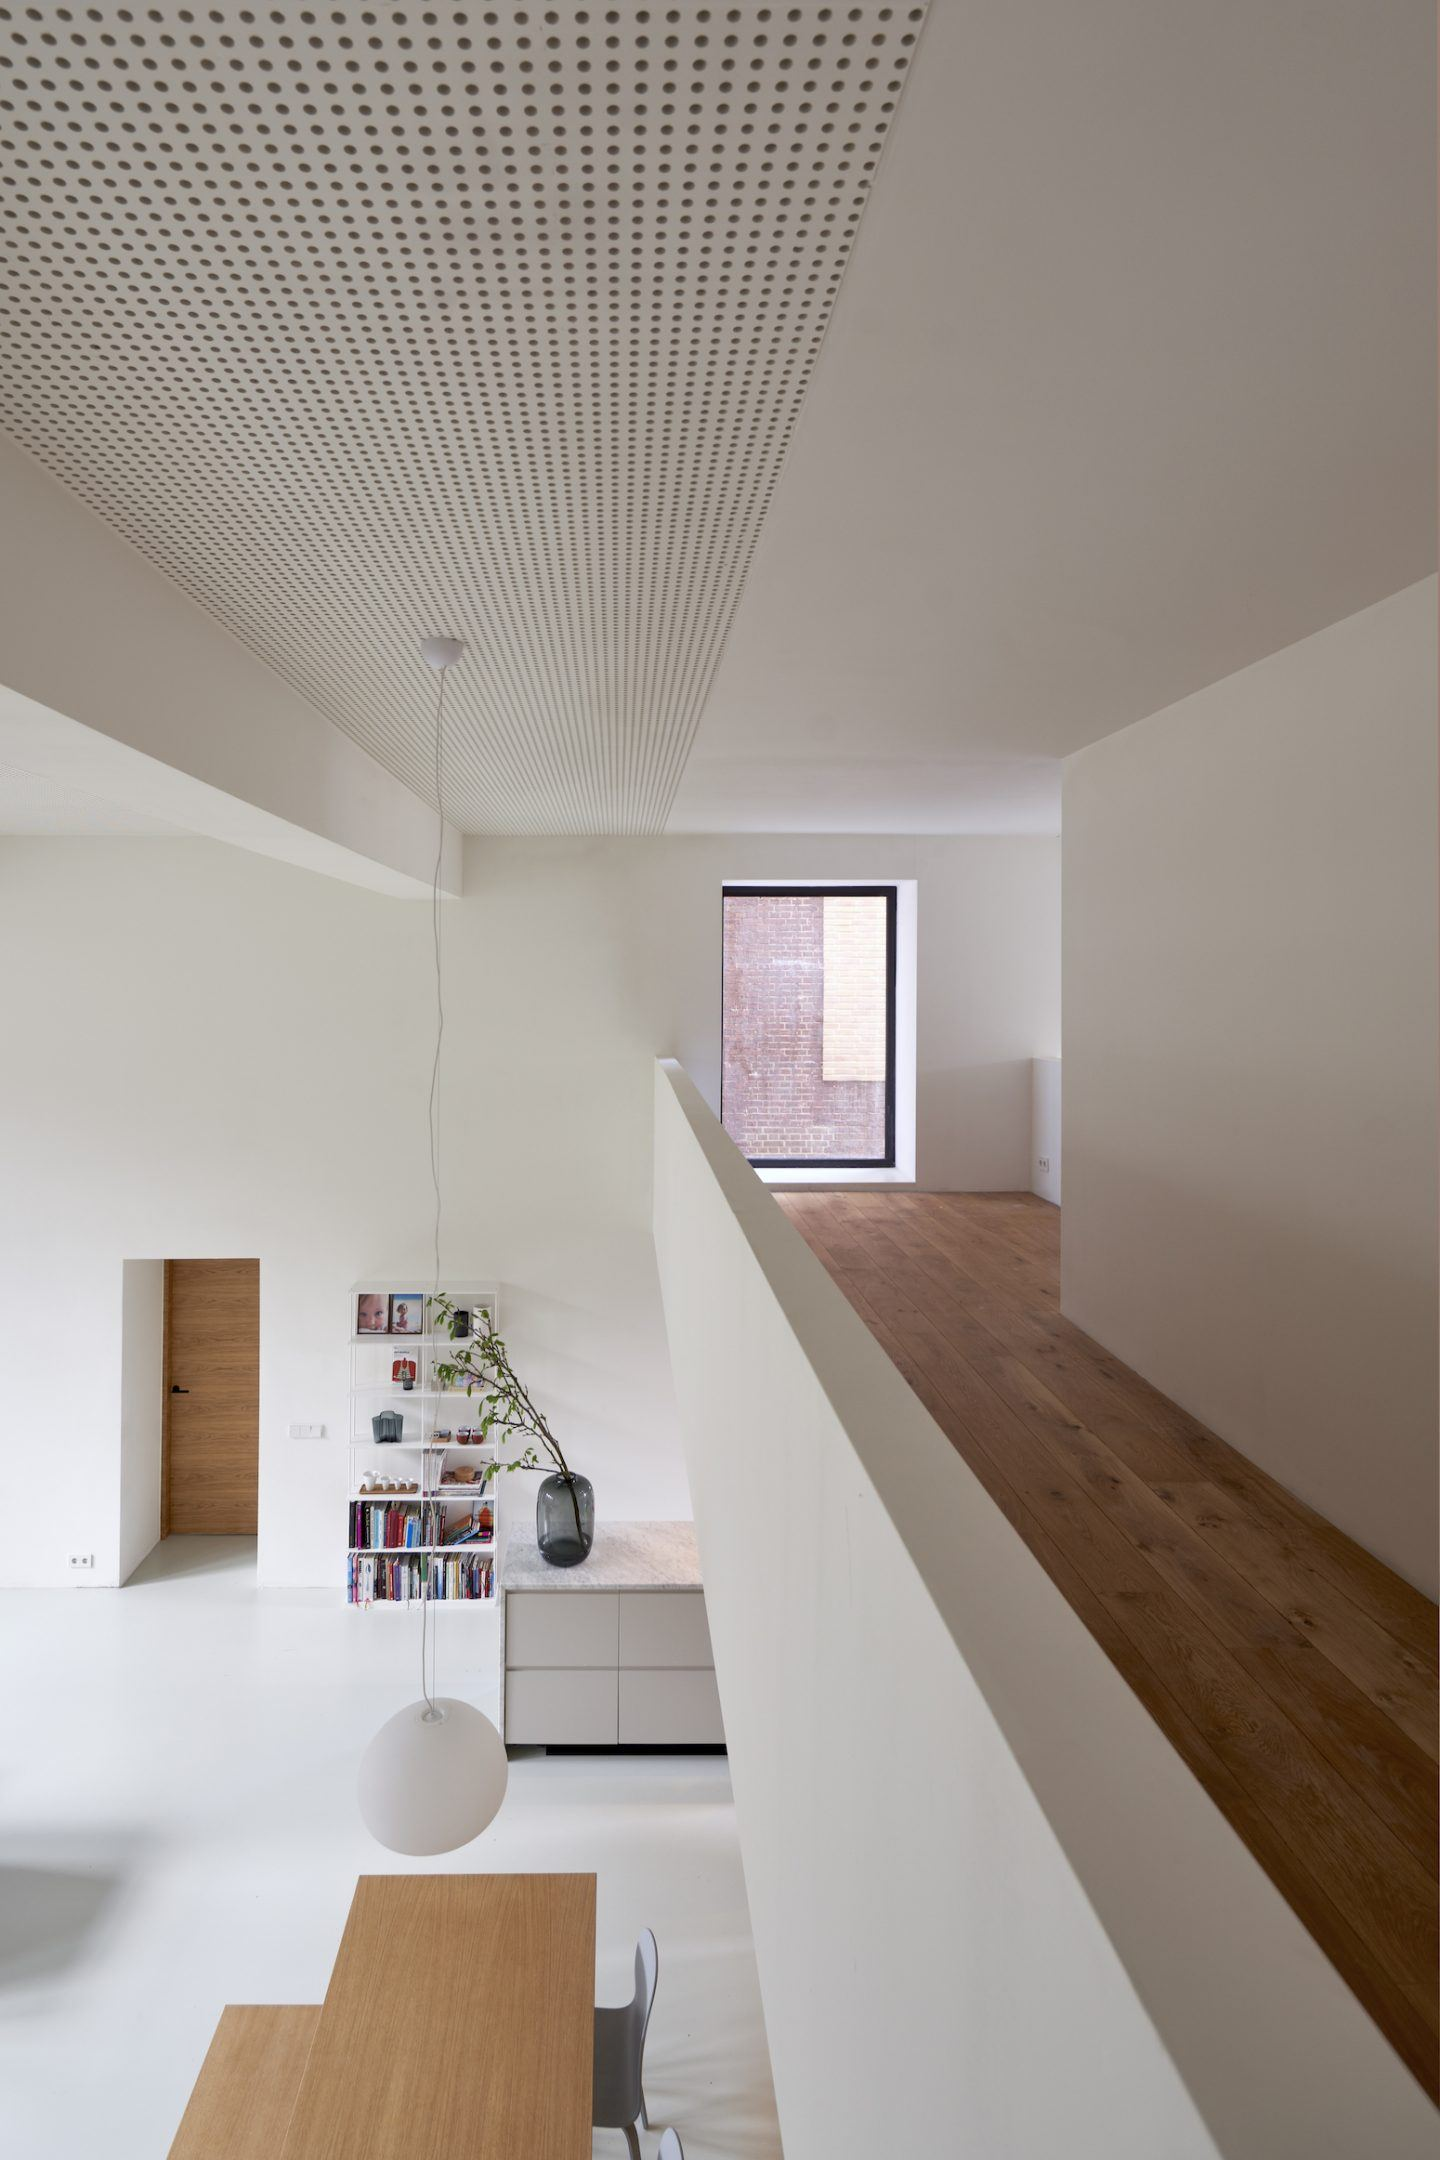 IGNANT-Architecture-Eklund-Terbeek-The-Gym-Loft-9